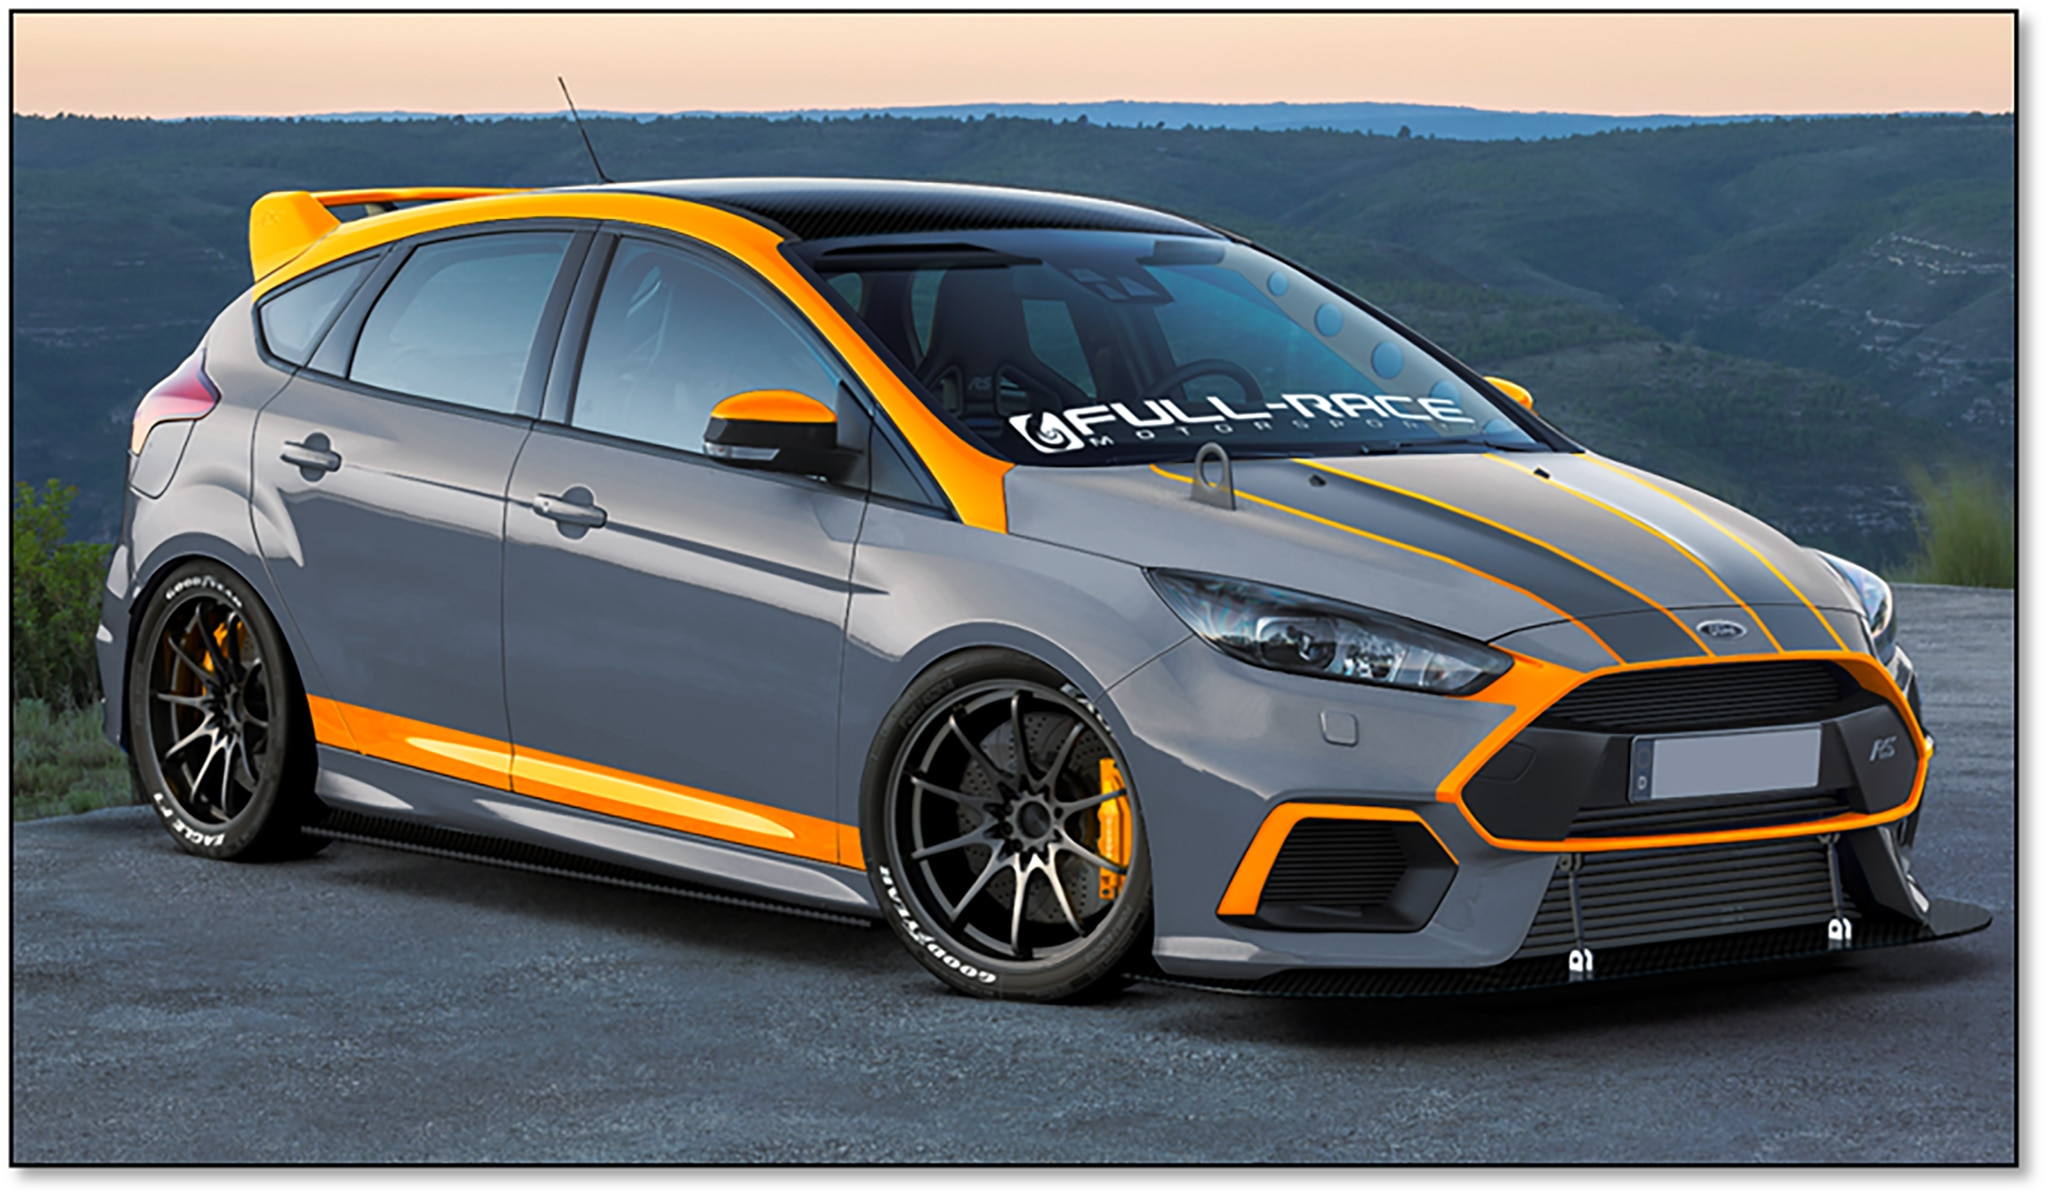 Sema 2016 five focus builds and a feisty fiesta